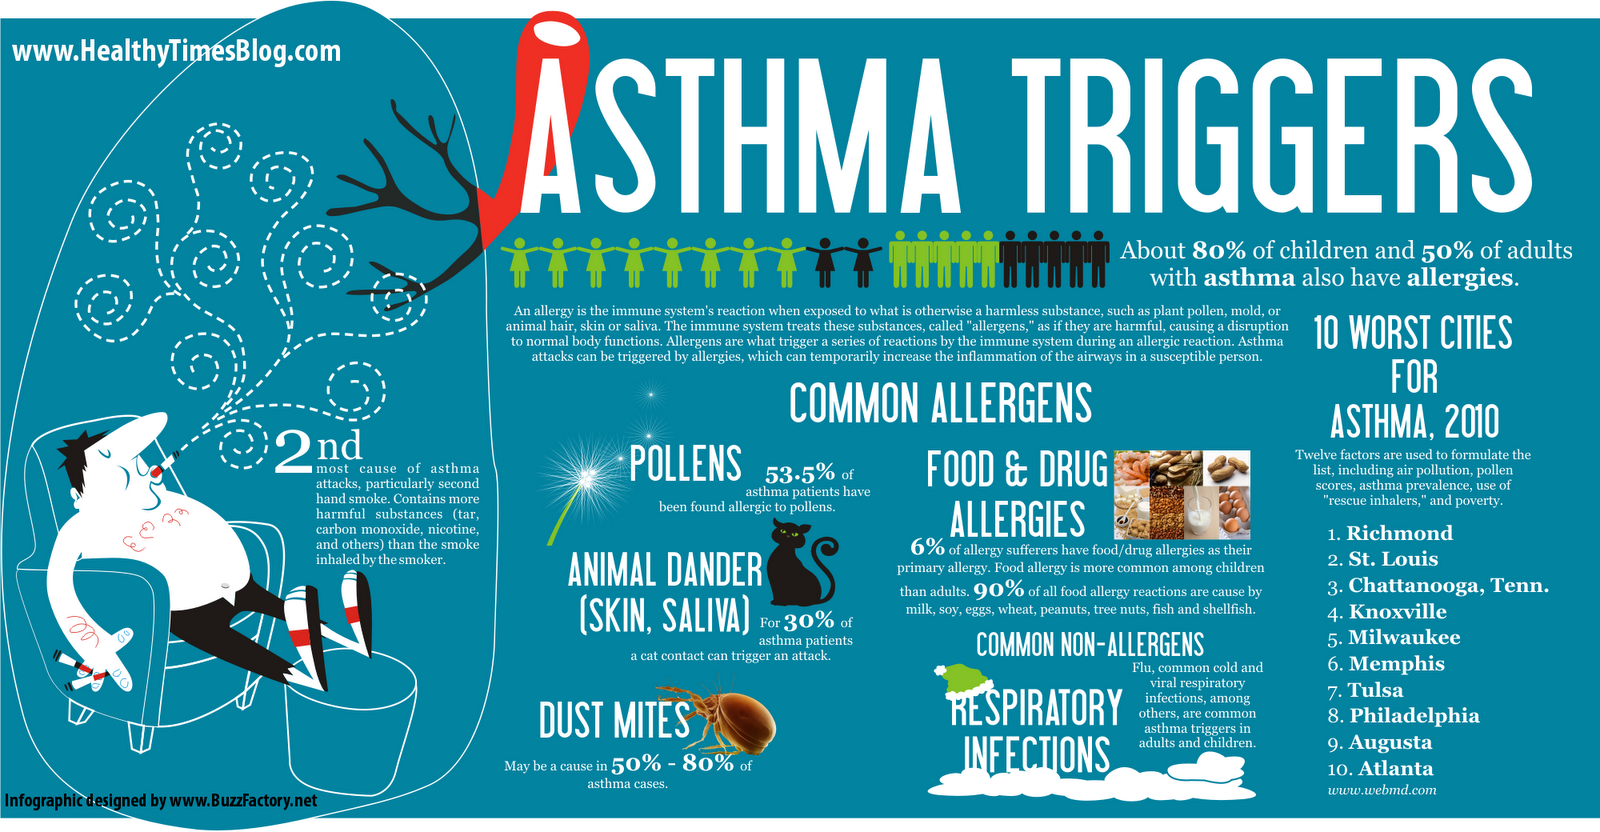 the common causes and triggers of asthma